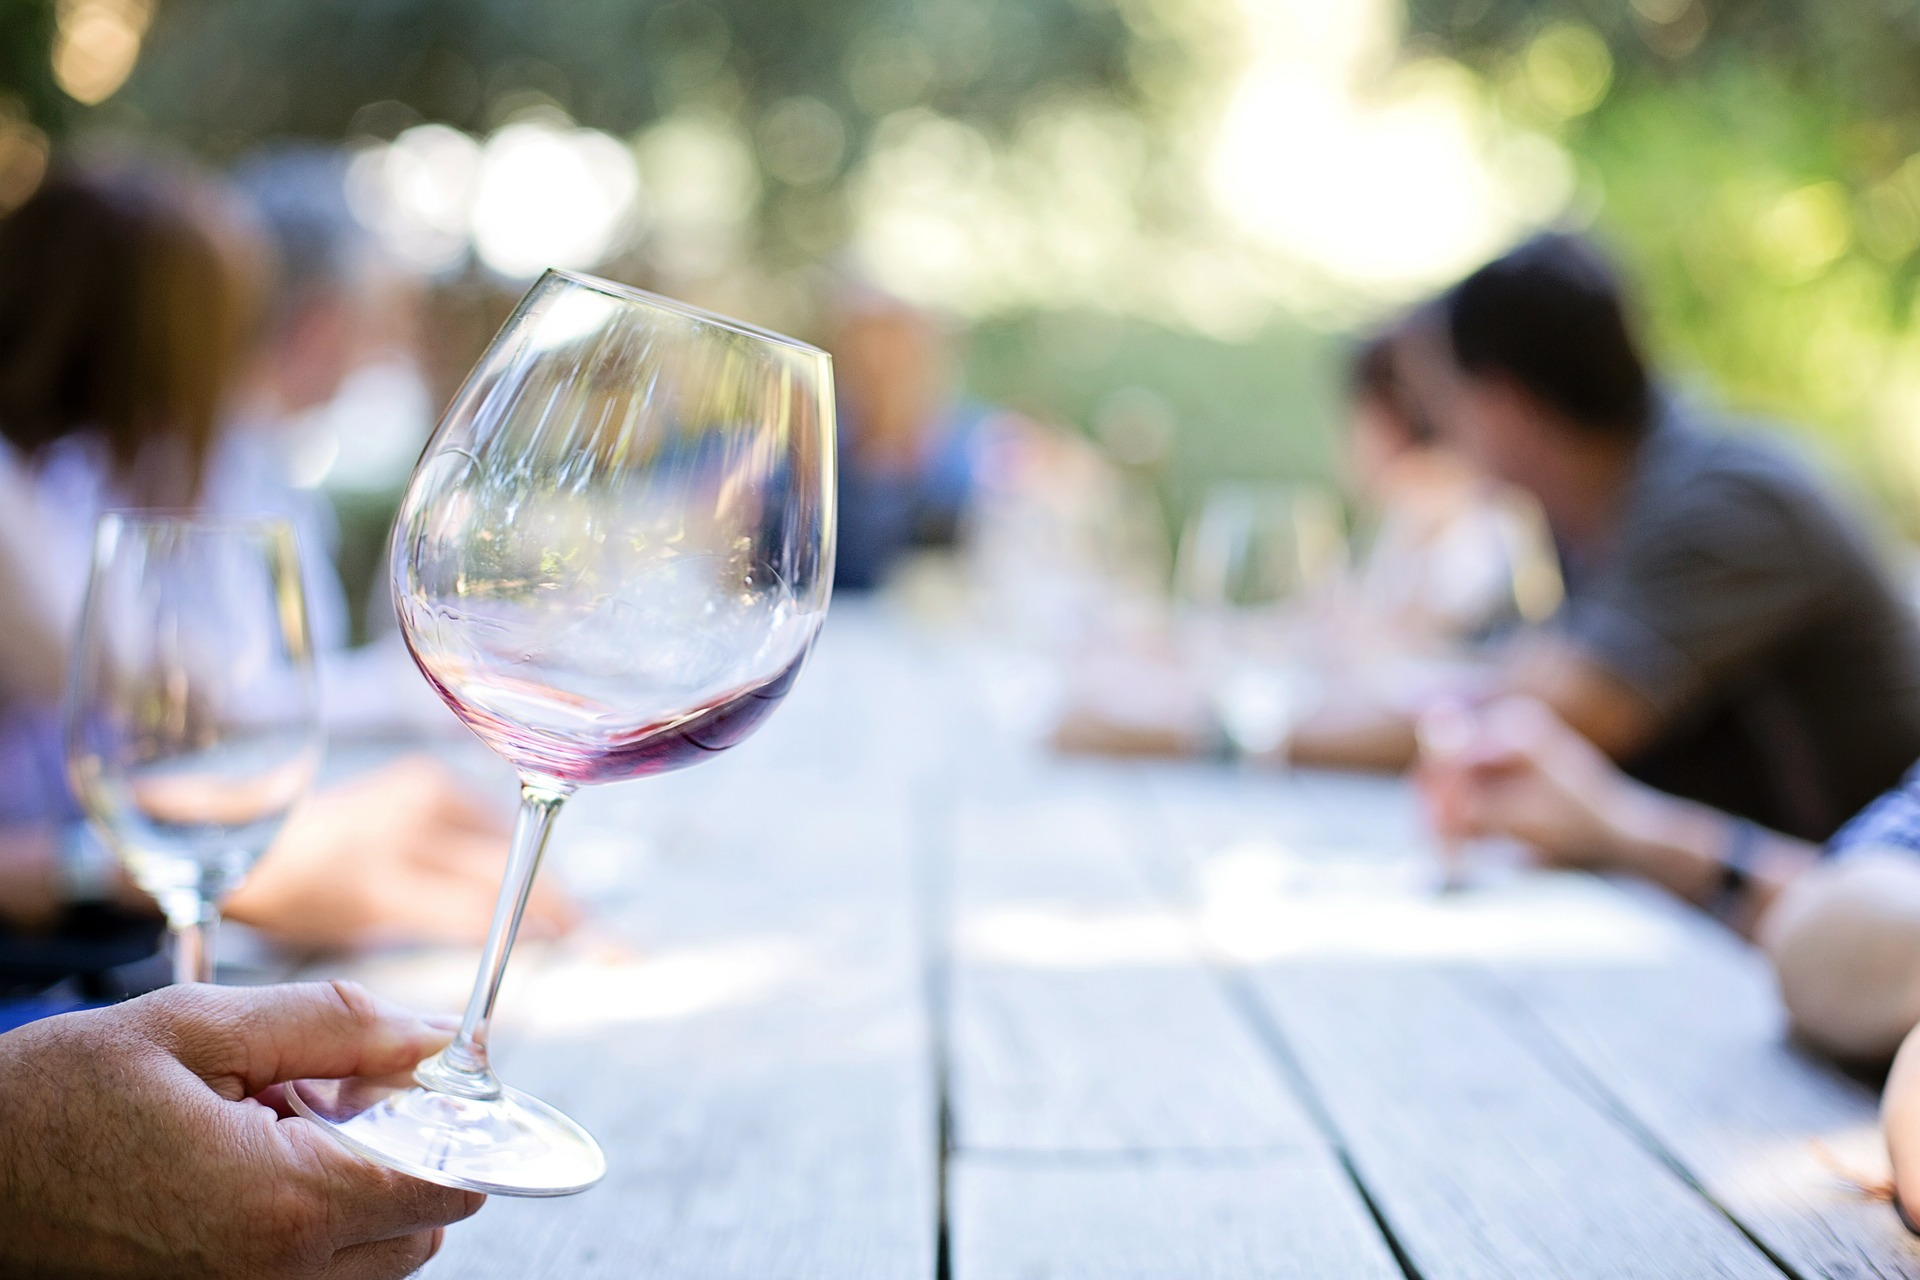 Wine Glass over table